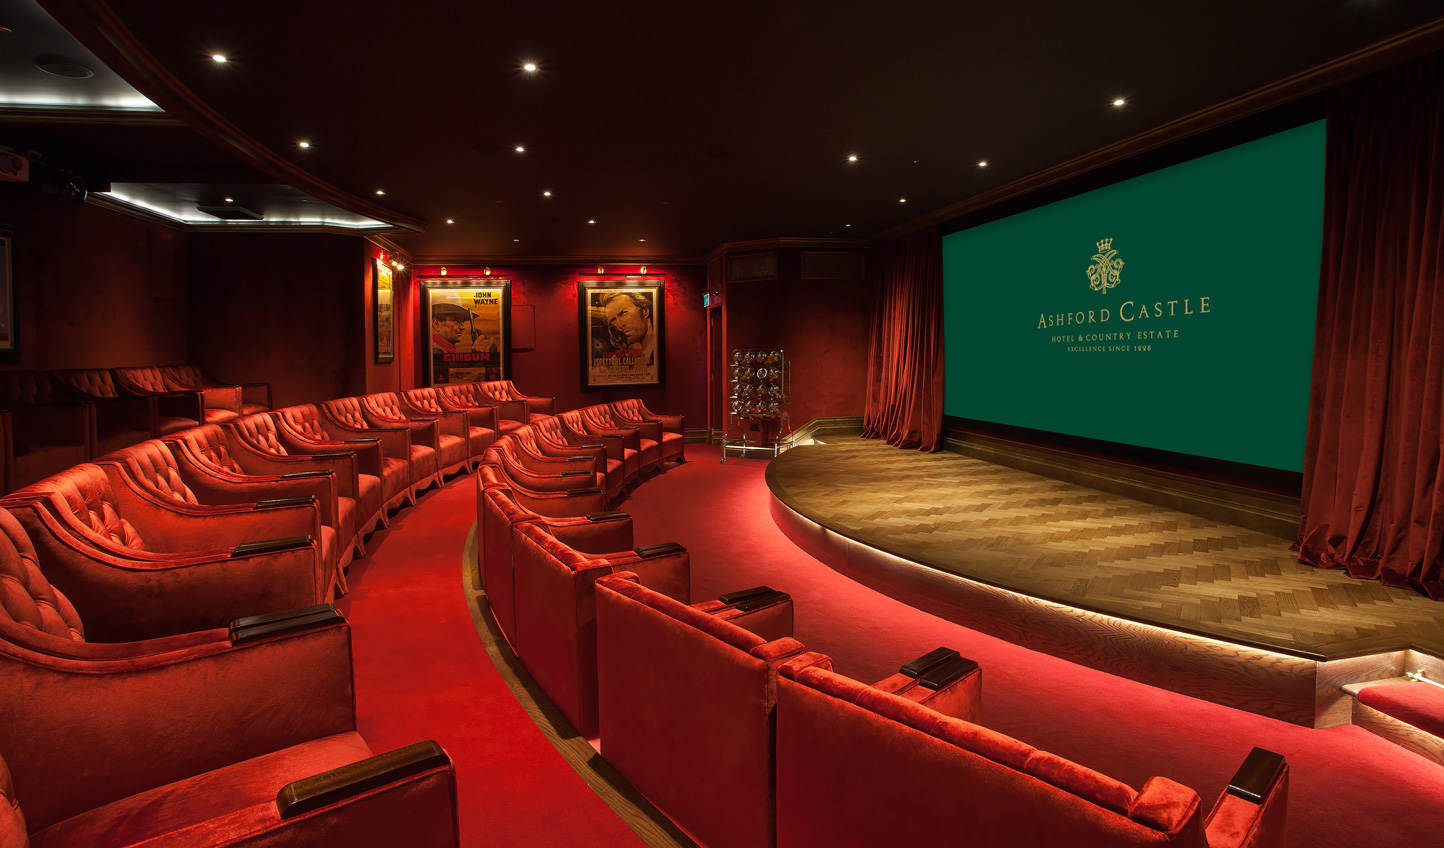 The cinema offers the perfect antidote to a rainy day